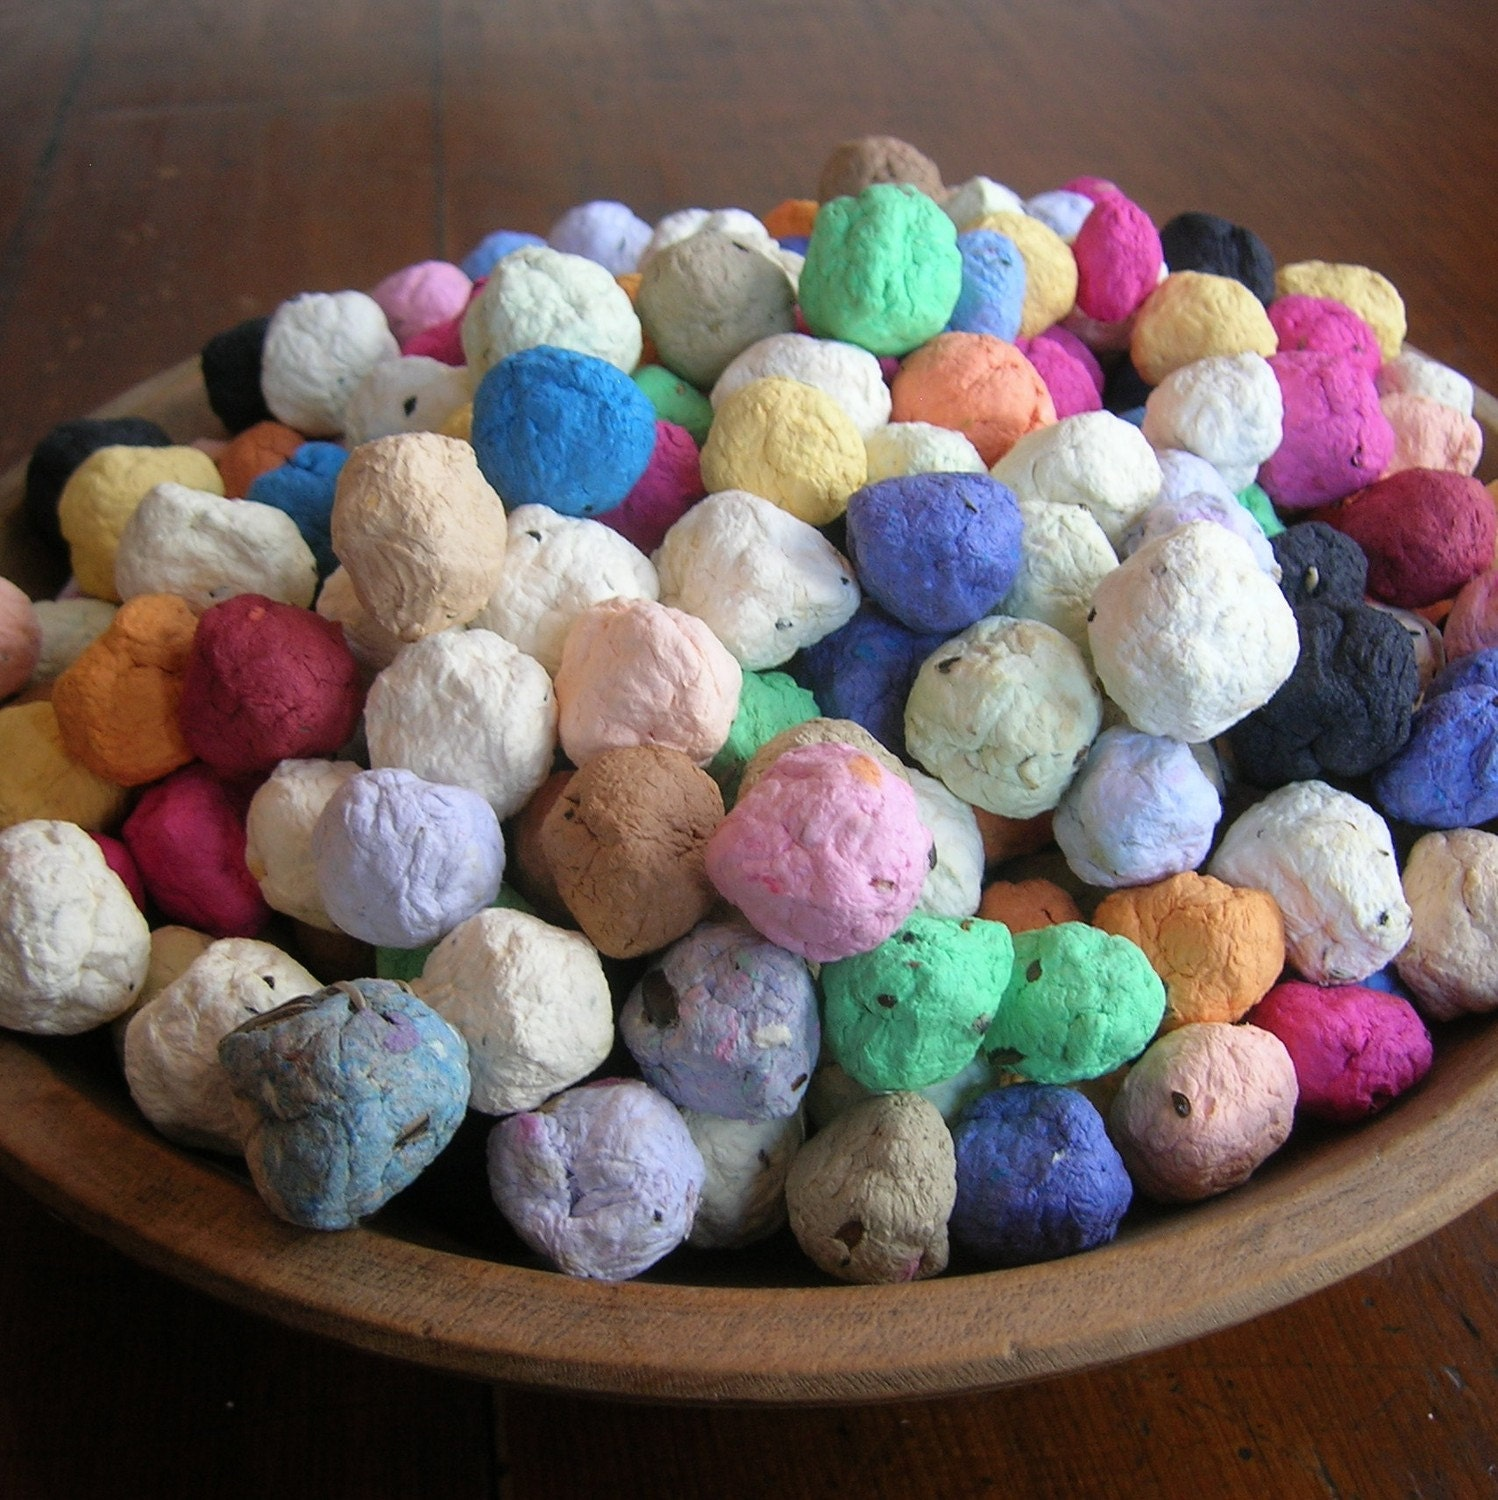 DEPOSIT on CUSTOM order of Seed Bombs for your special event favors - colorful balls of handmade paper embedded with perennial and annual flower seeds